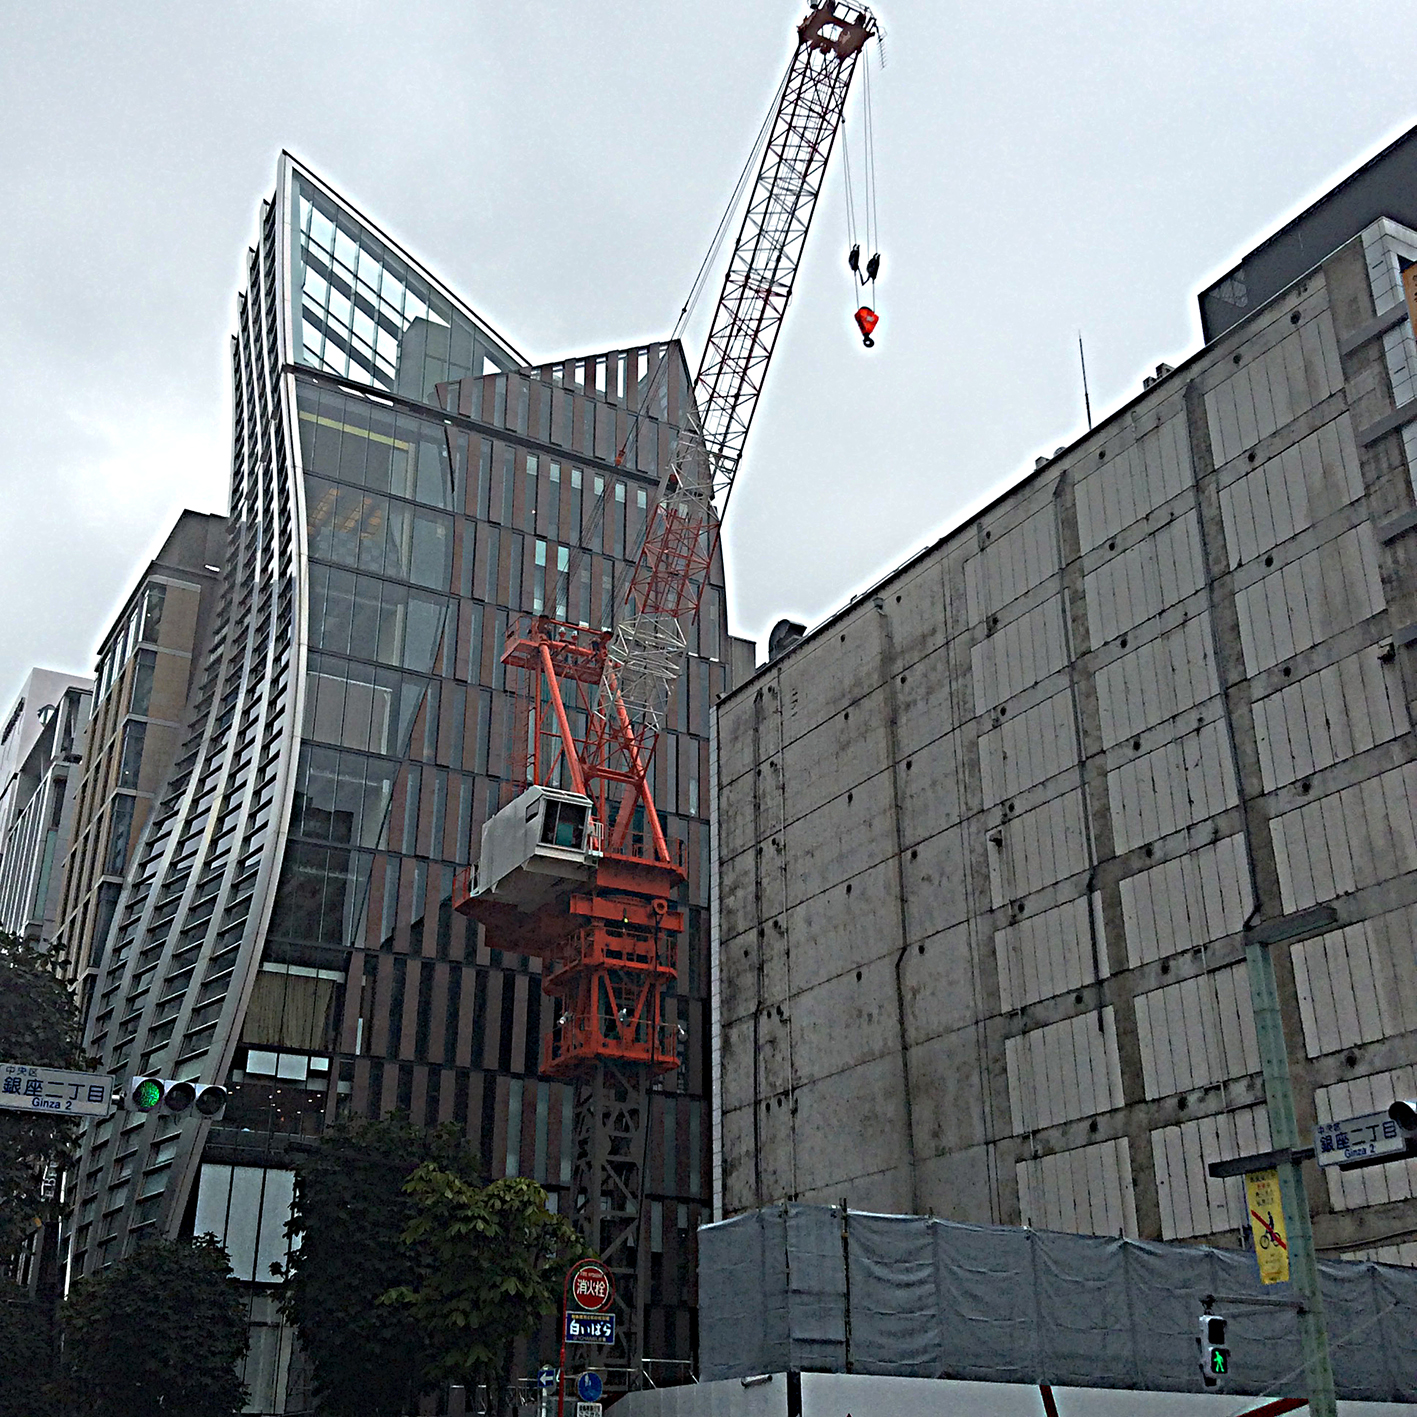 a red crane hook hovers over a scaffolded building site, the temporary gap offers an excellent view of the sinuous lines of the glass building just behind it.